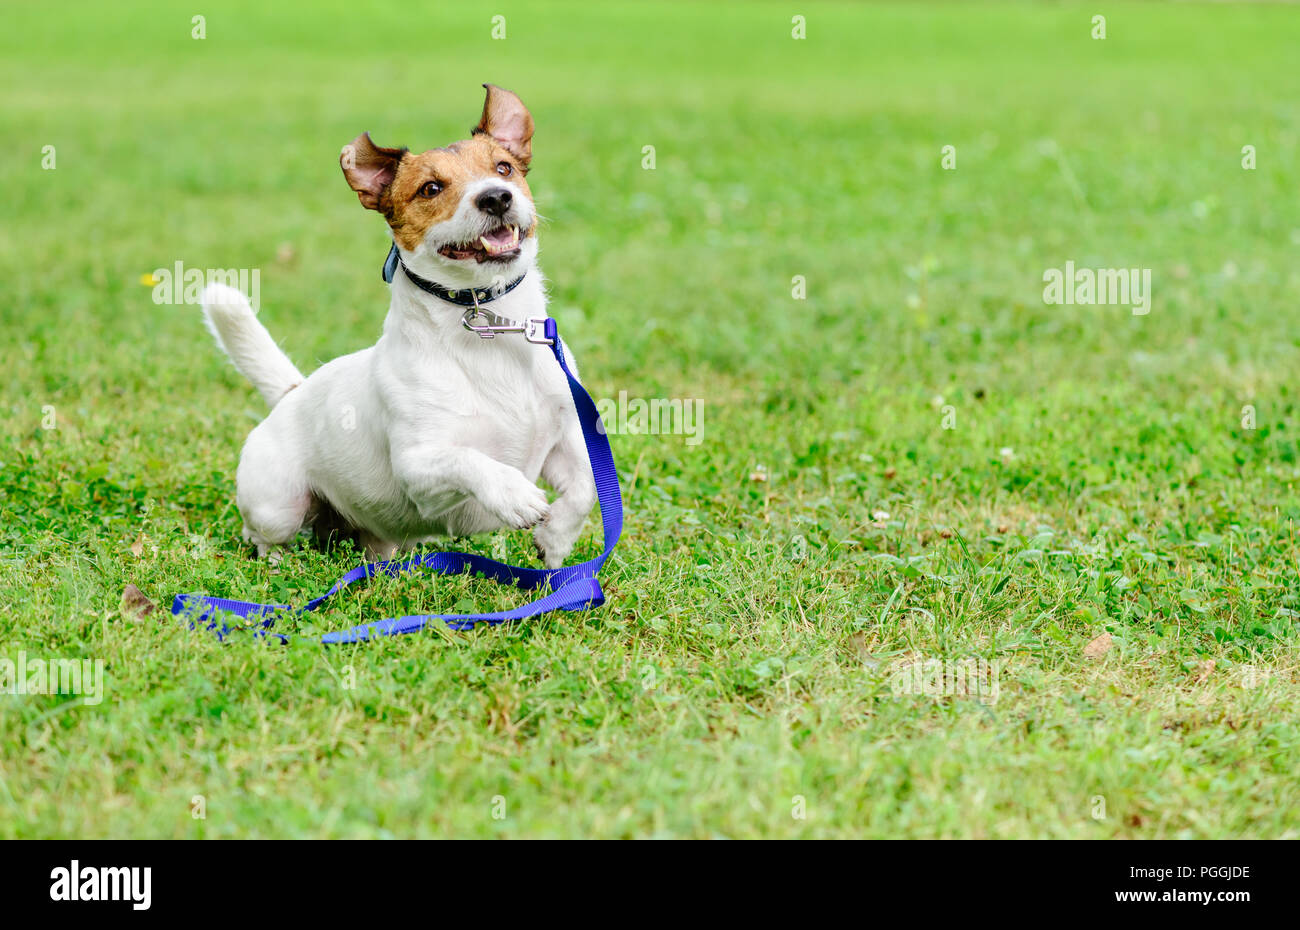 Adopt a pet concept with happy and excited dog running with leash on ground - Stock Image